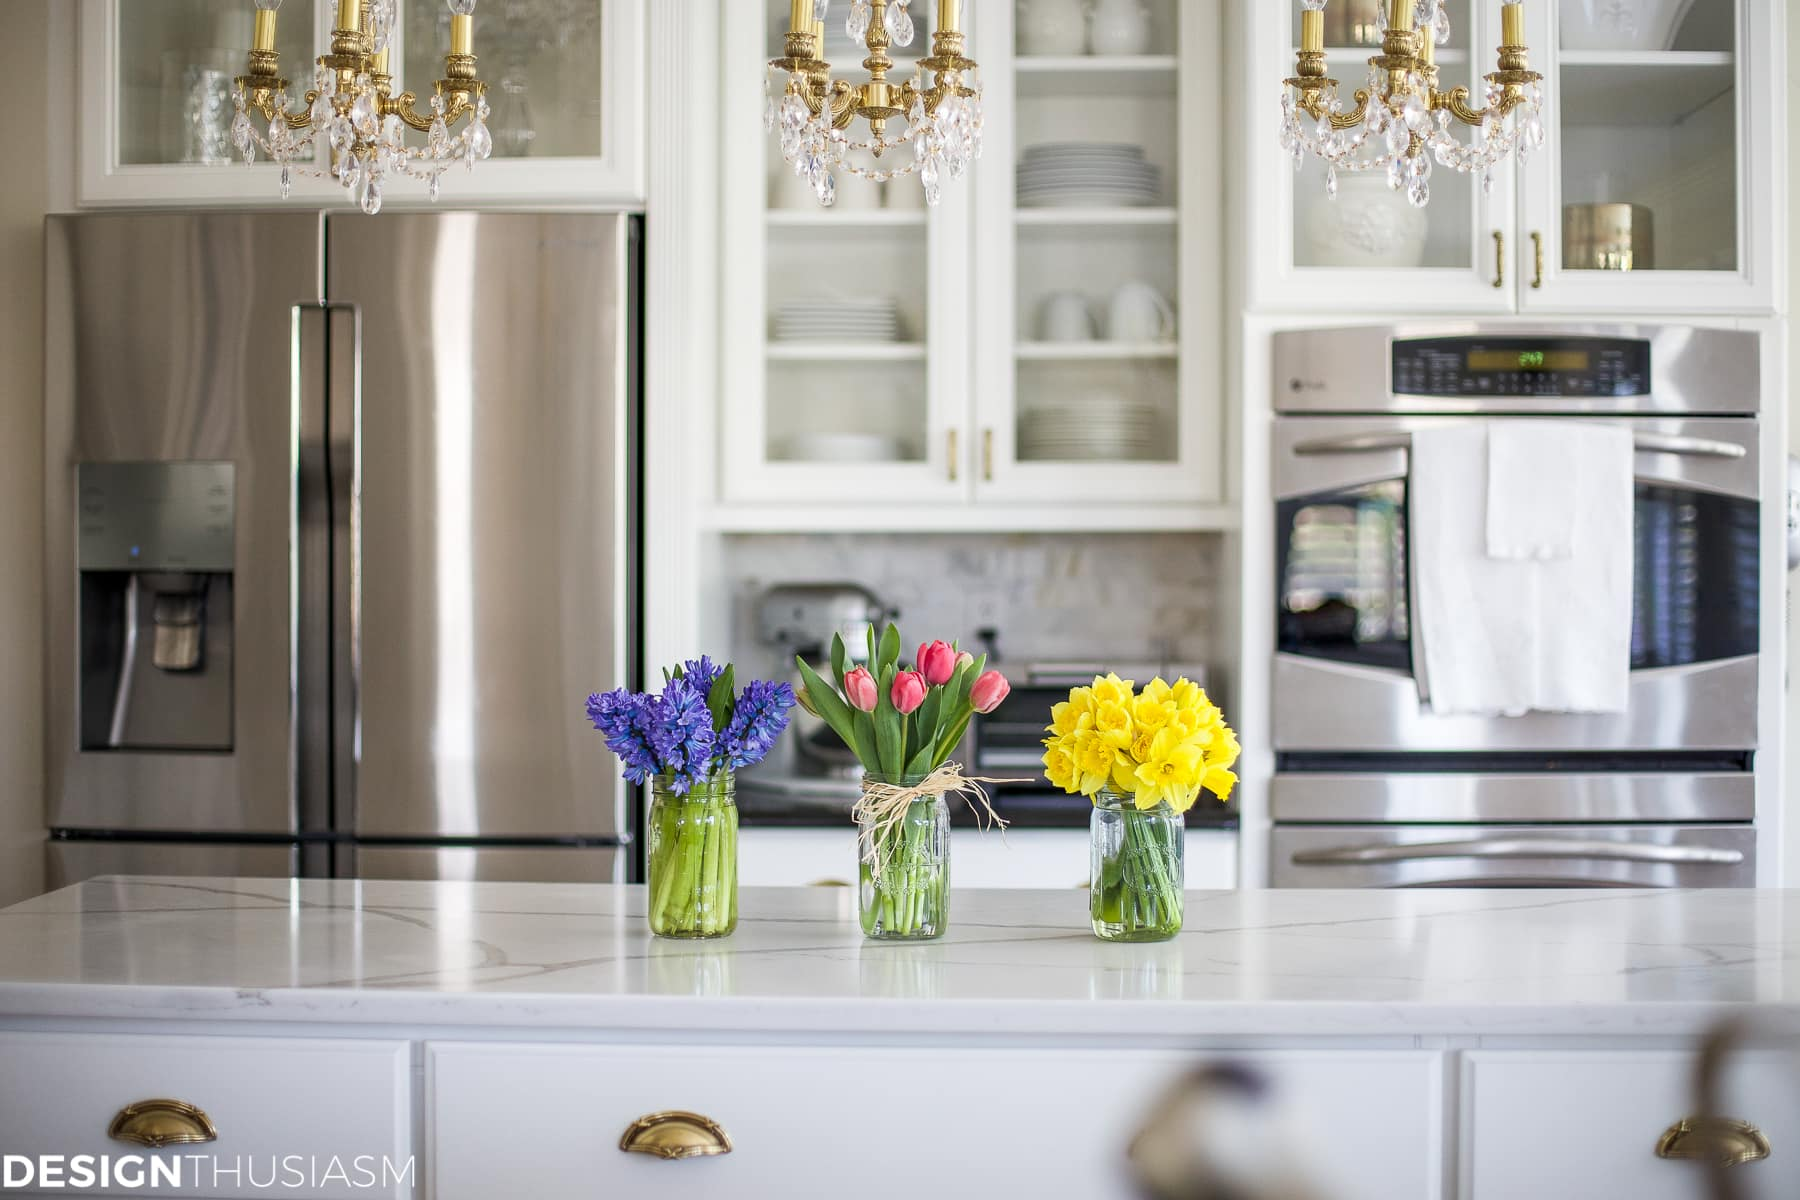 Spring Room Decor | 6 ways to add spring cheer to your home | designthusiasm.com